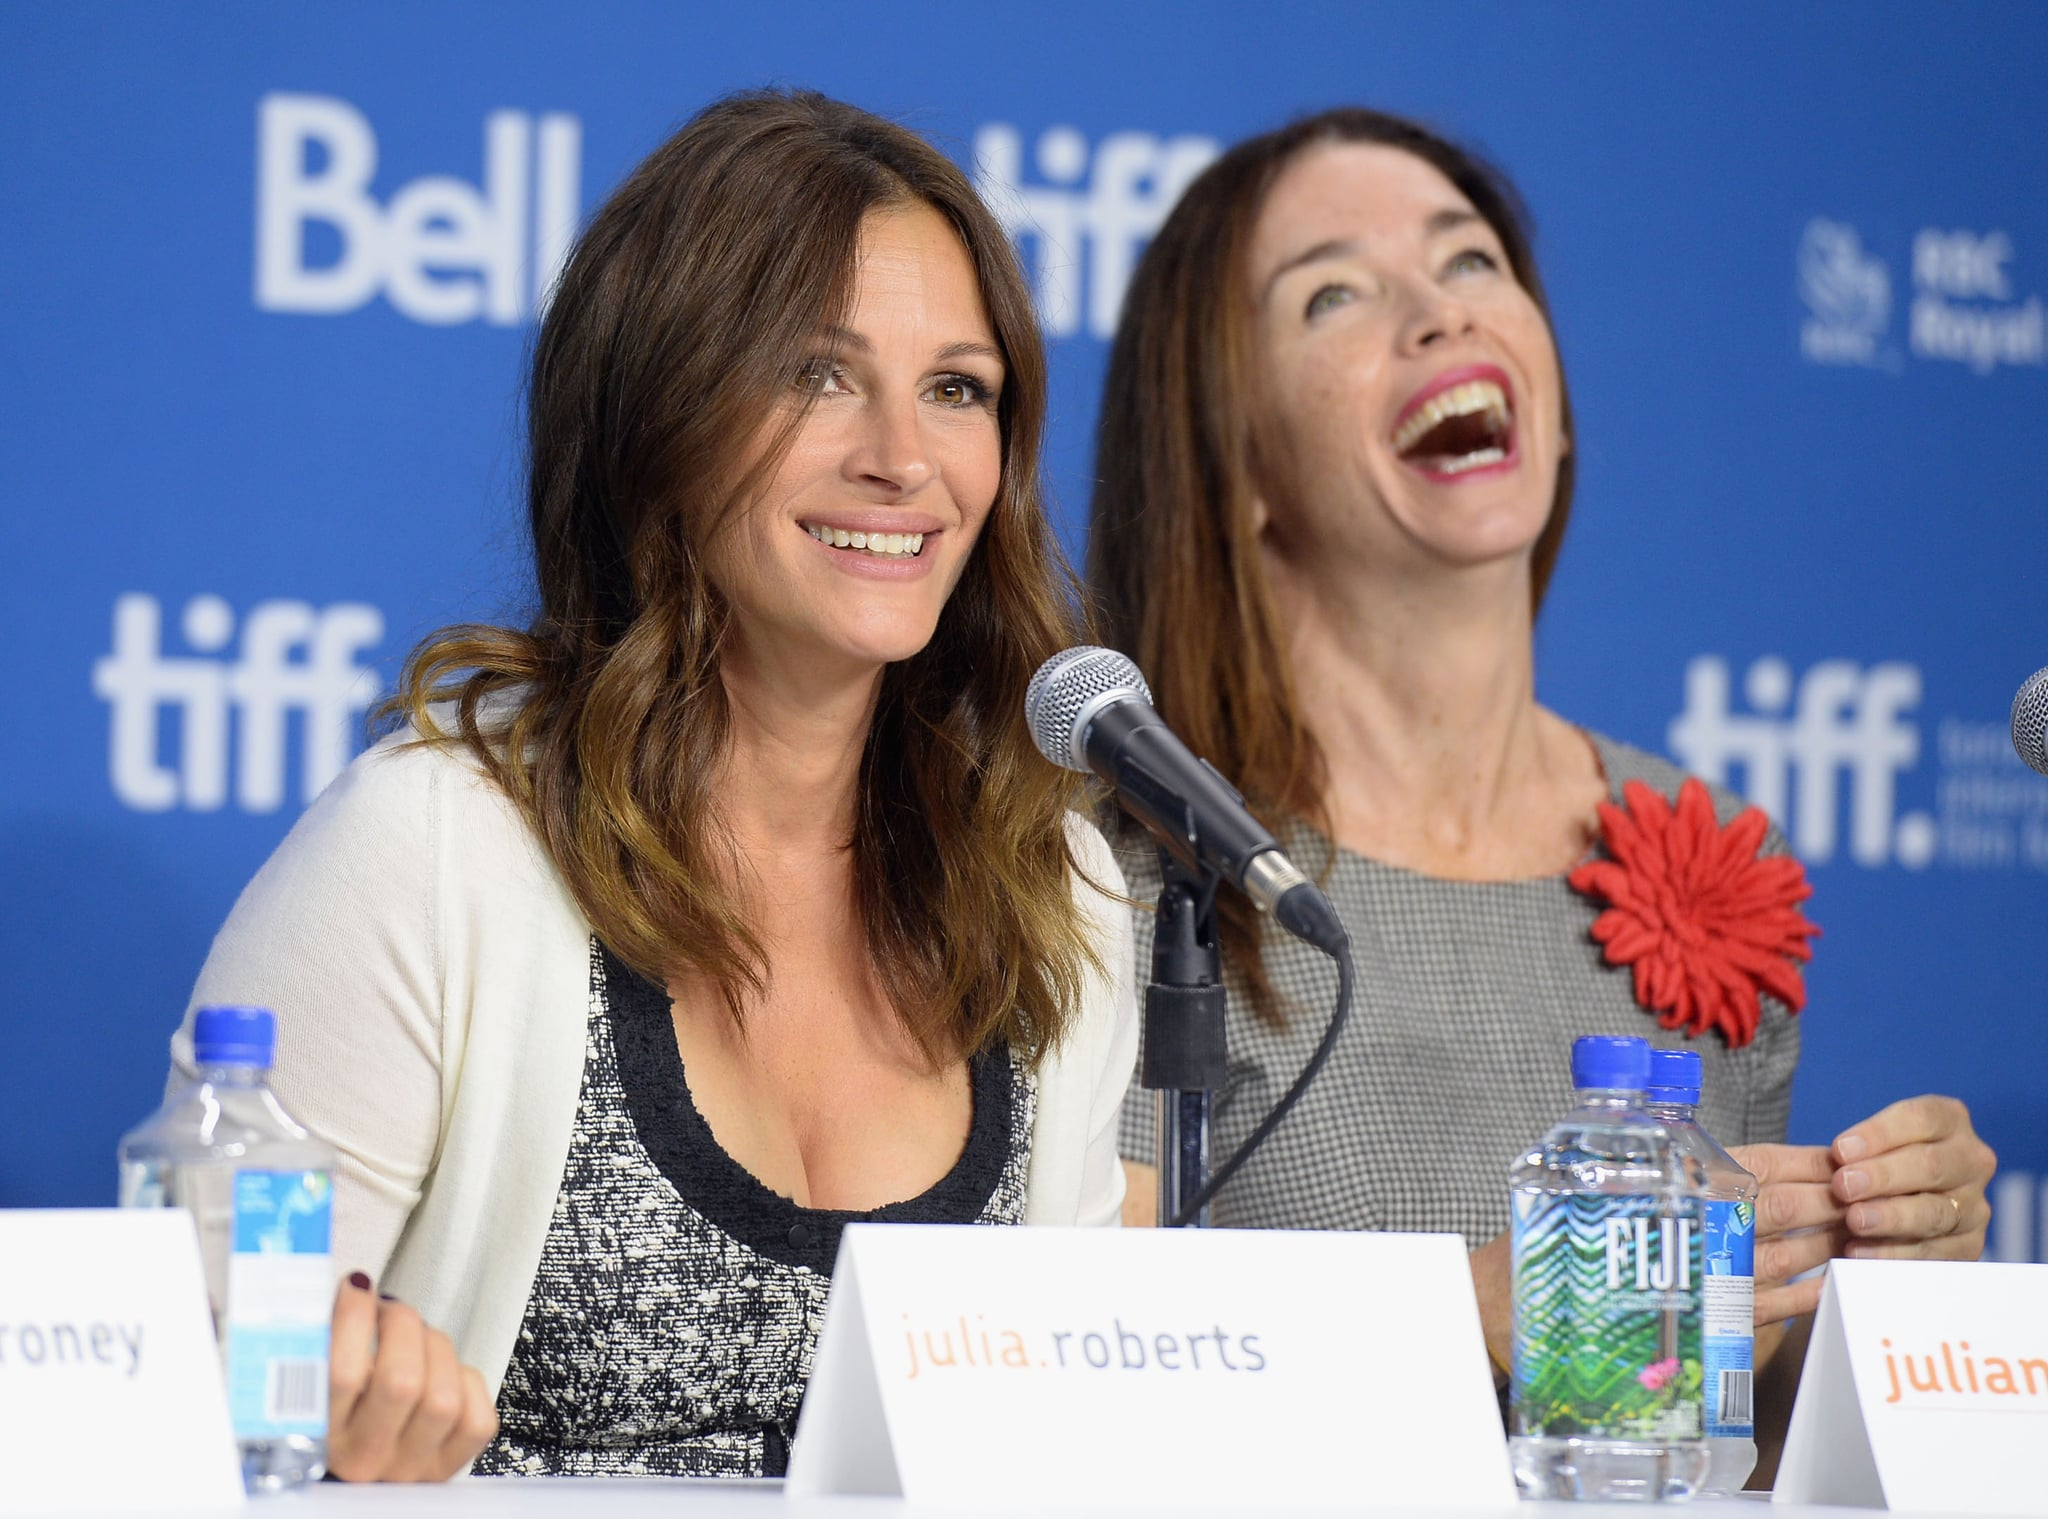 Julia Roberts had Julianne Nicholson cracking up at the August: Osage County press conference.